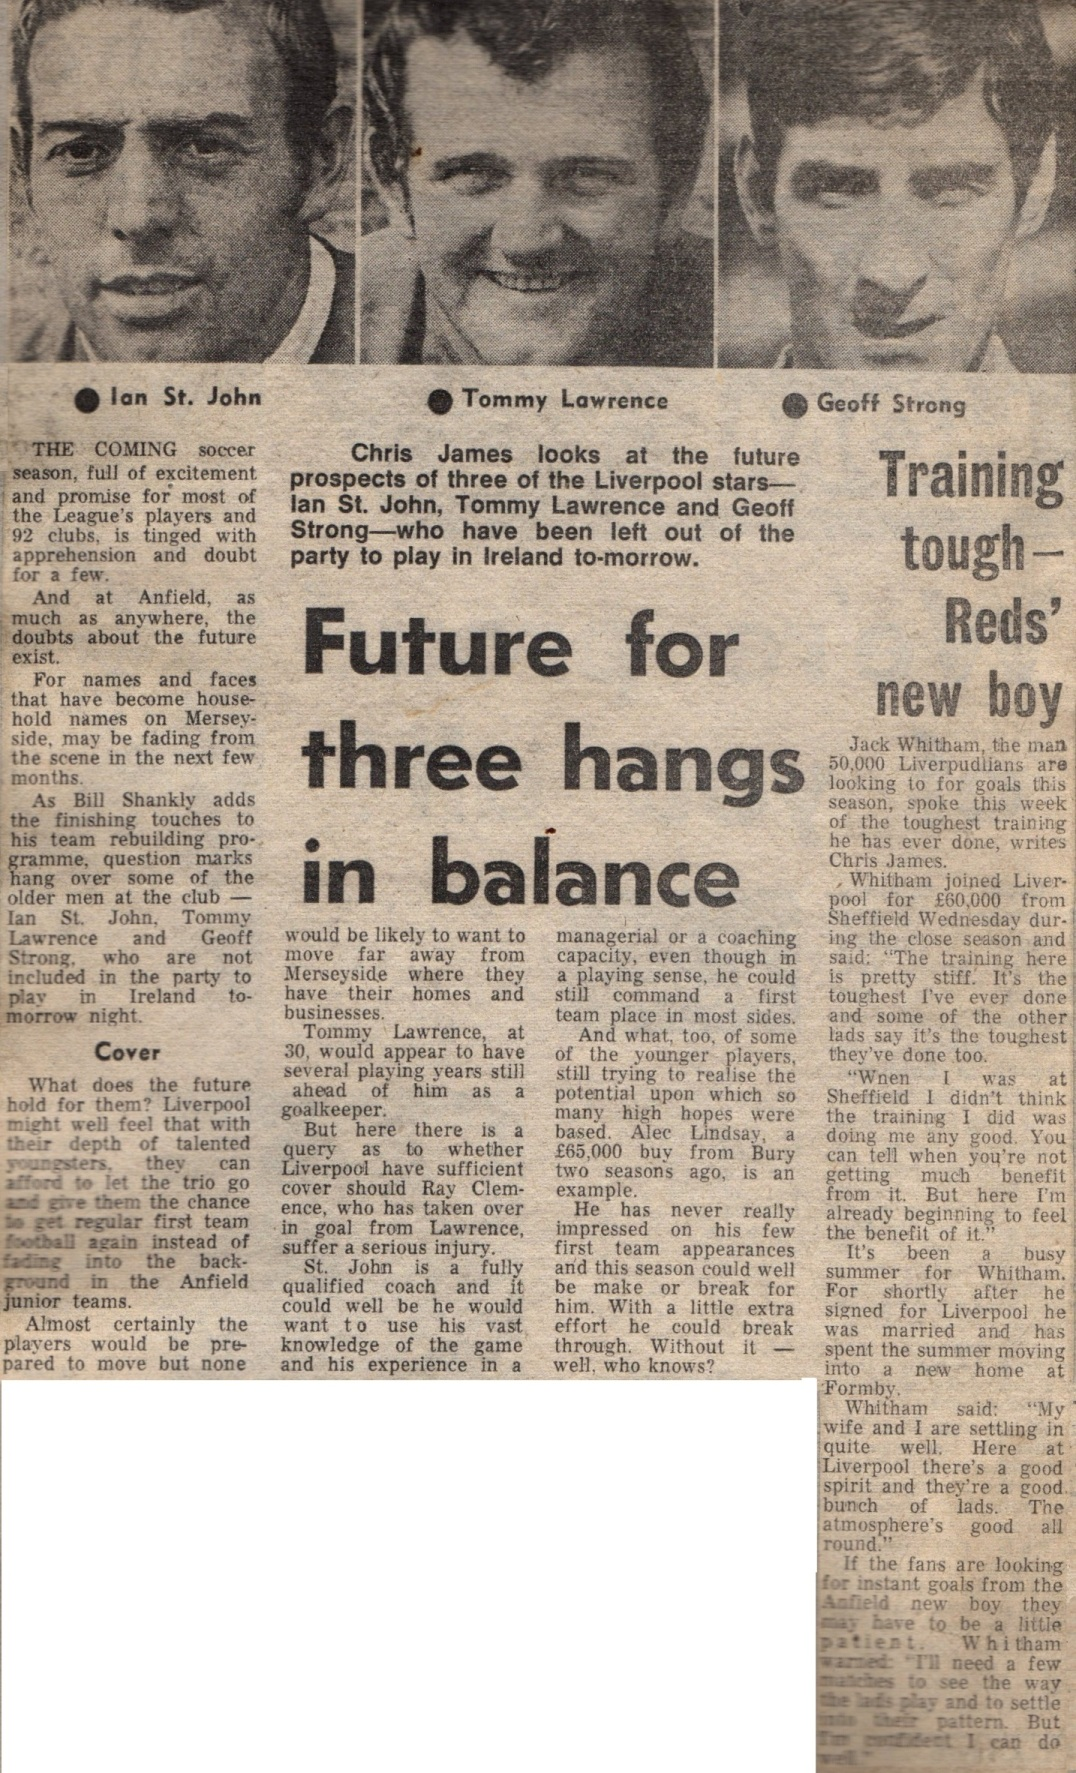 Future for three hangs in balance - August 1970